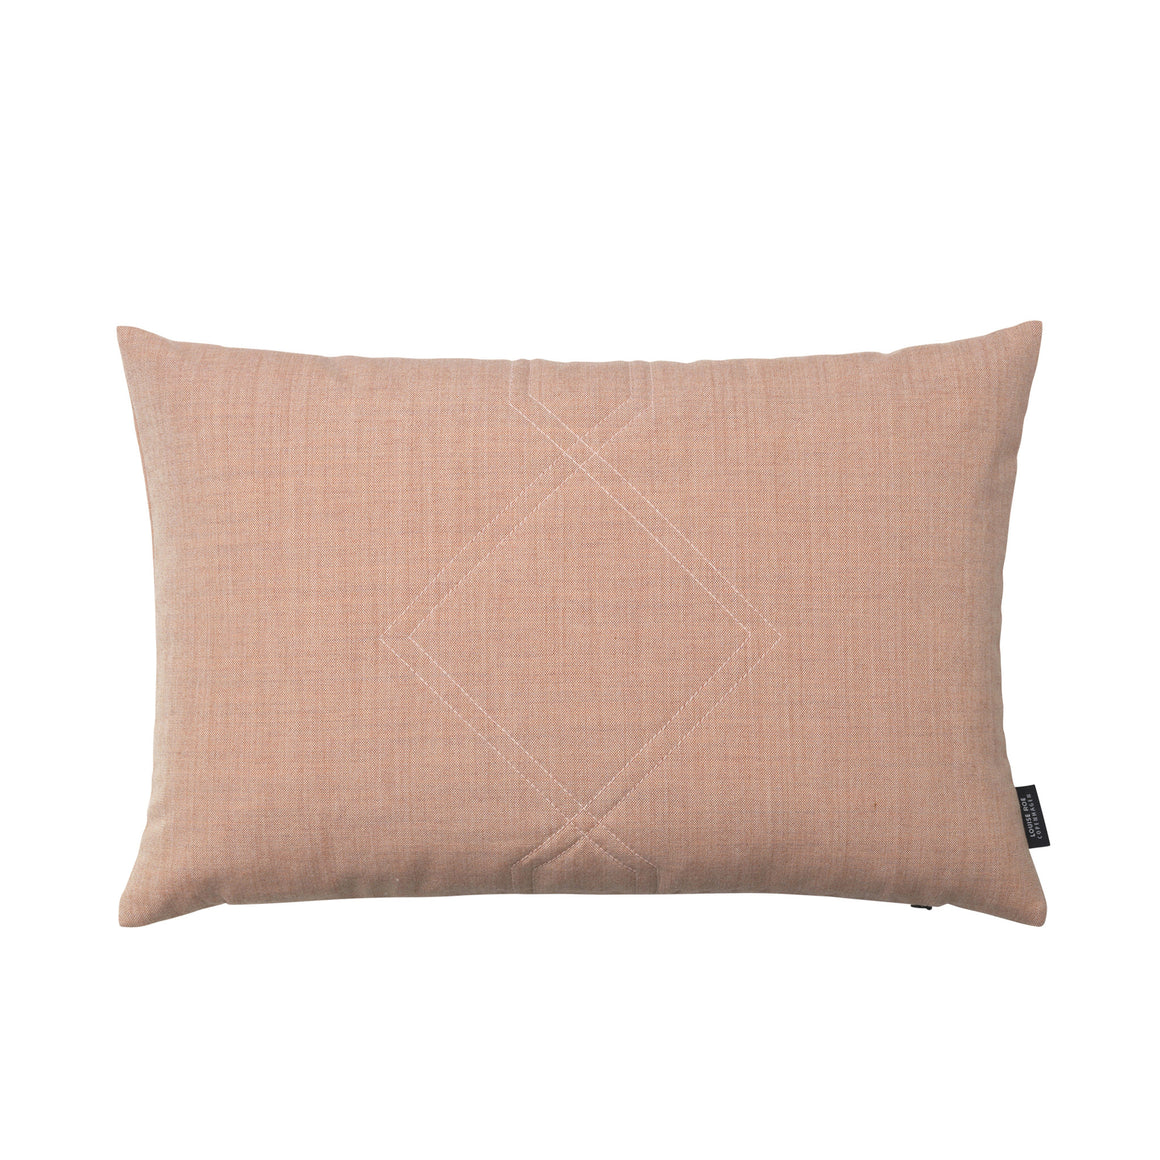 Louise Roe Diamond Quilted pude, Remix 612, Light Rose